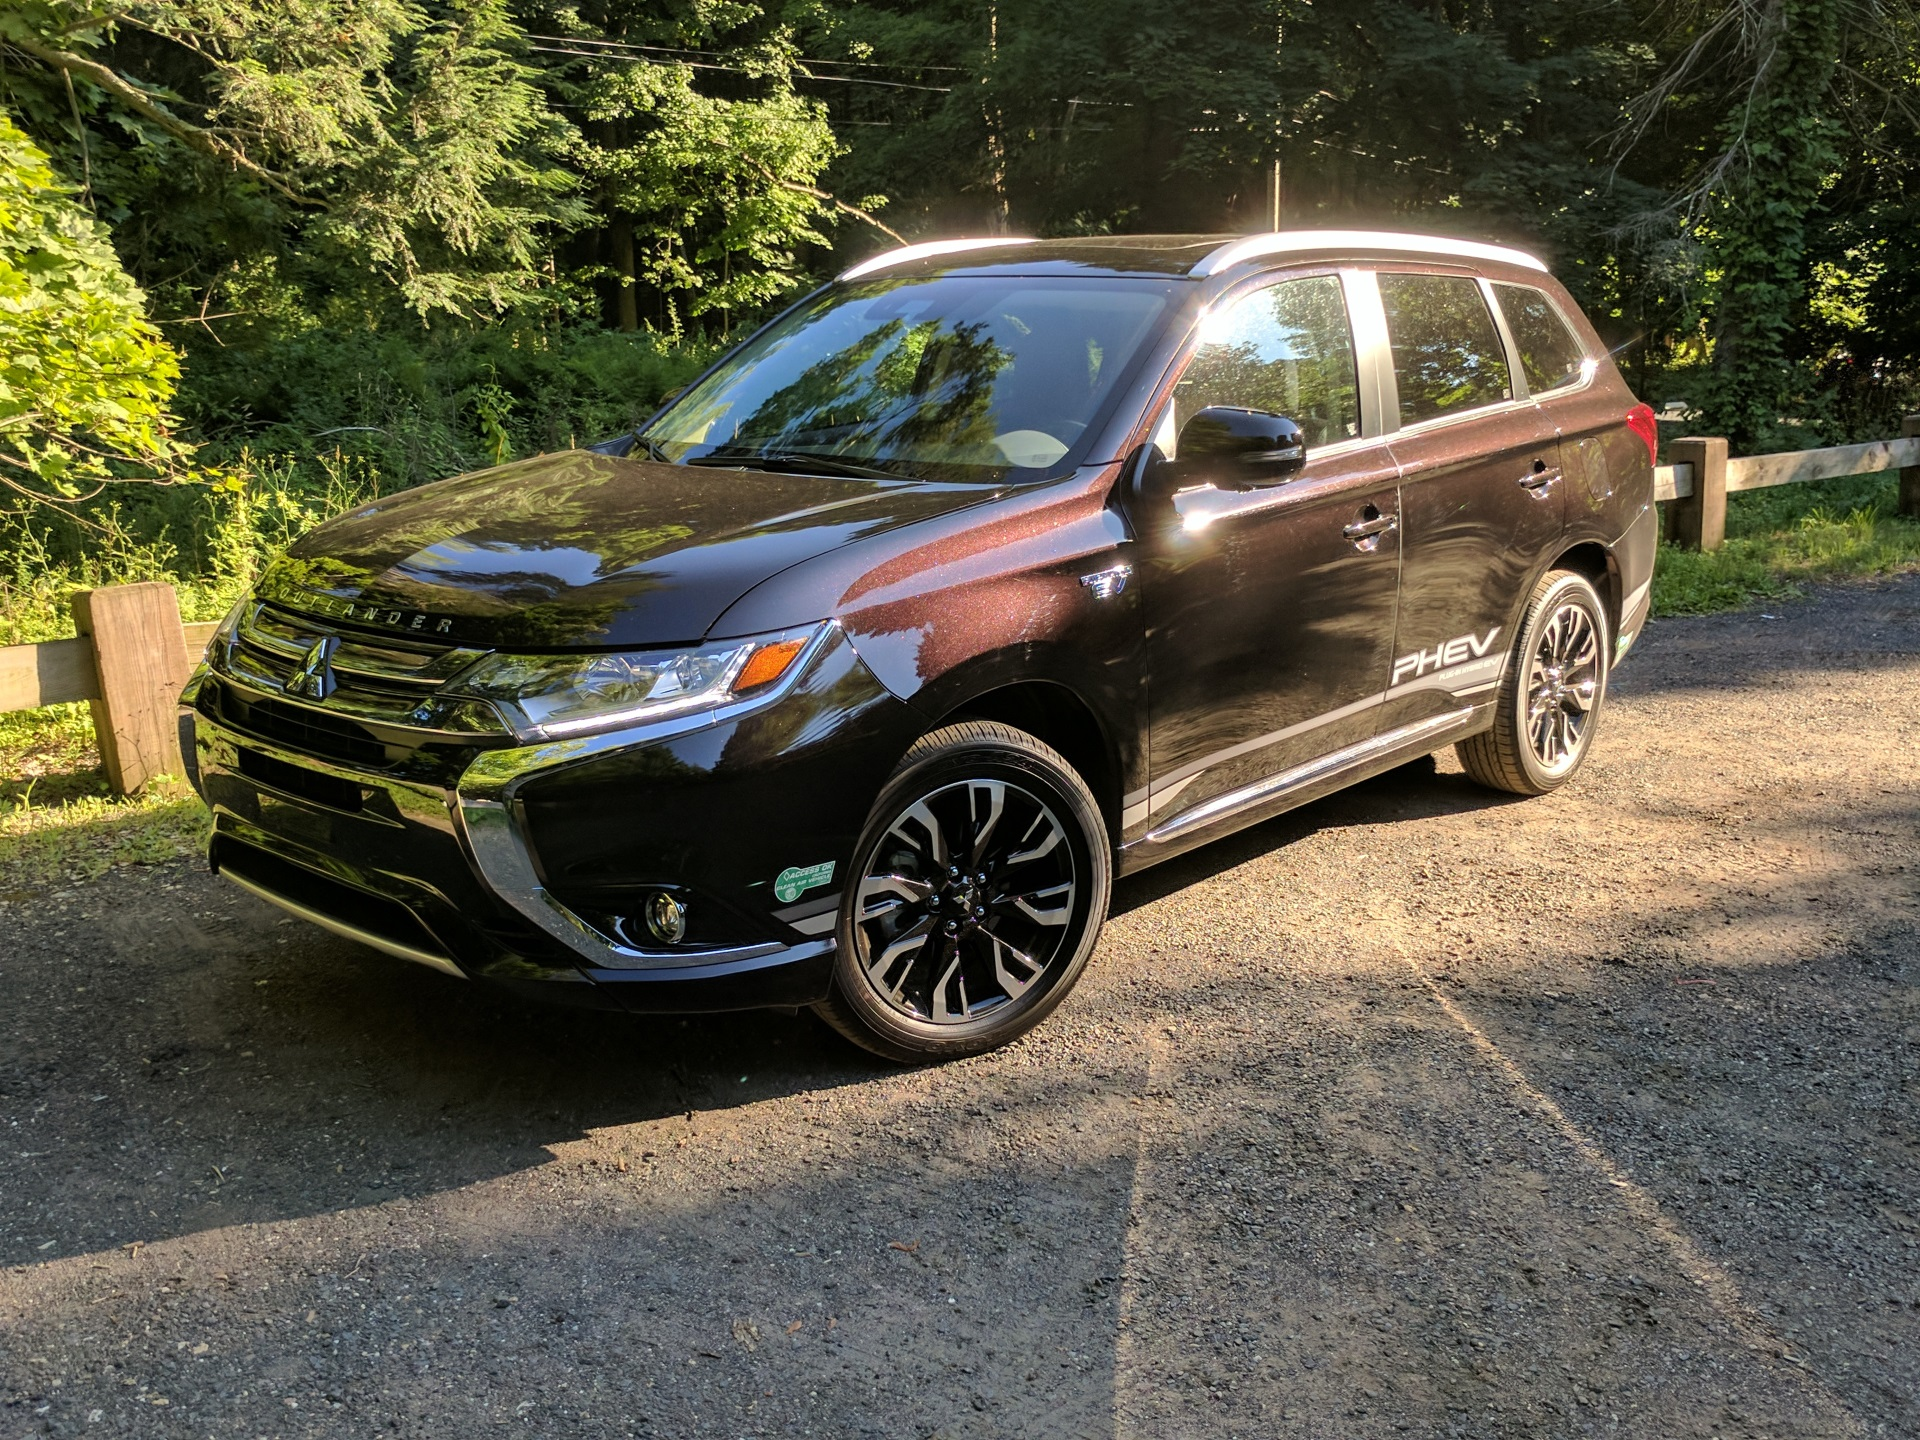 2018 Mitsubishi Outlander PHEV gas mileage review ...